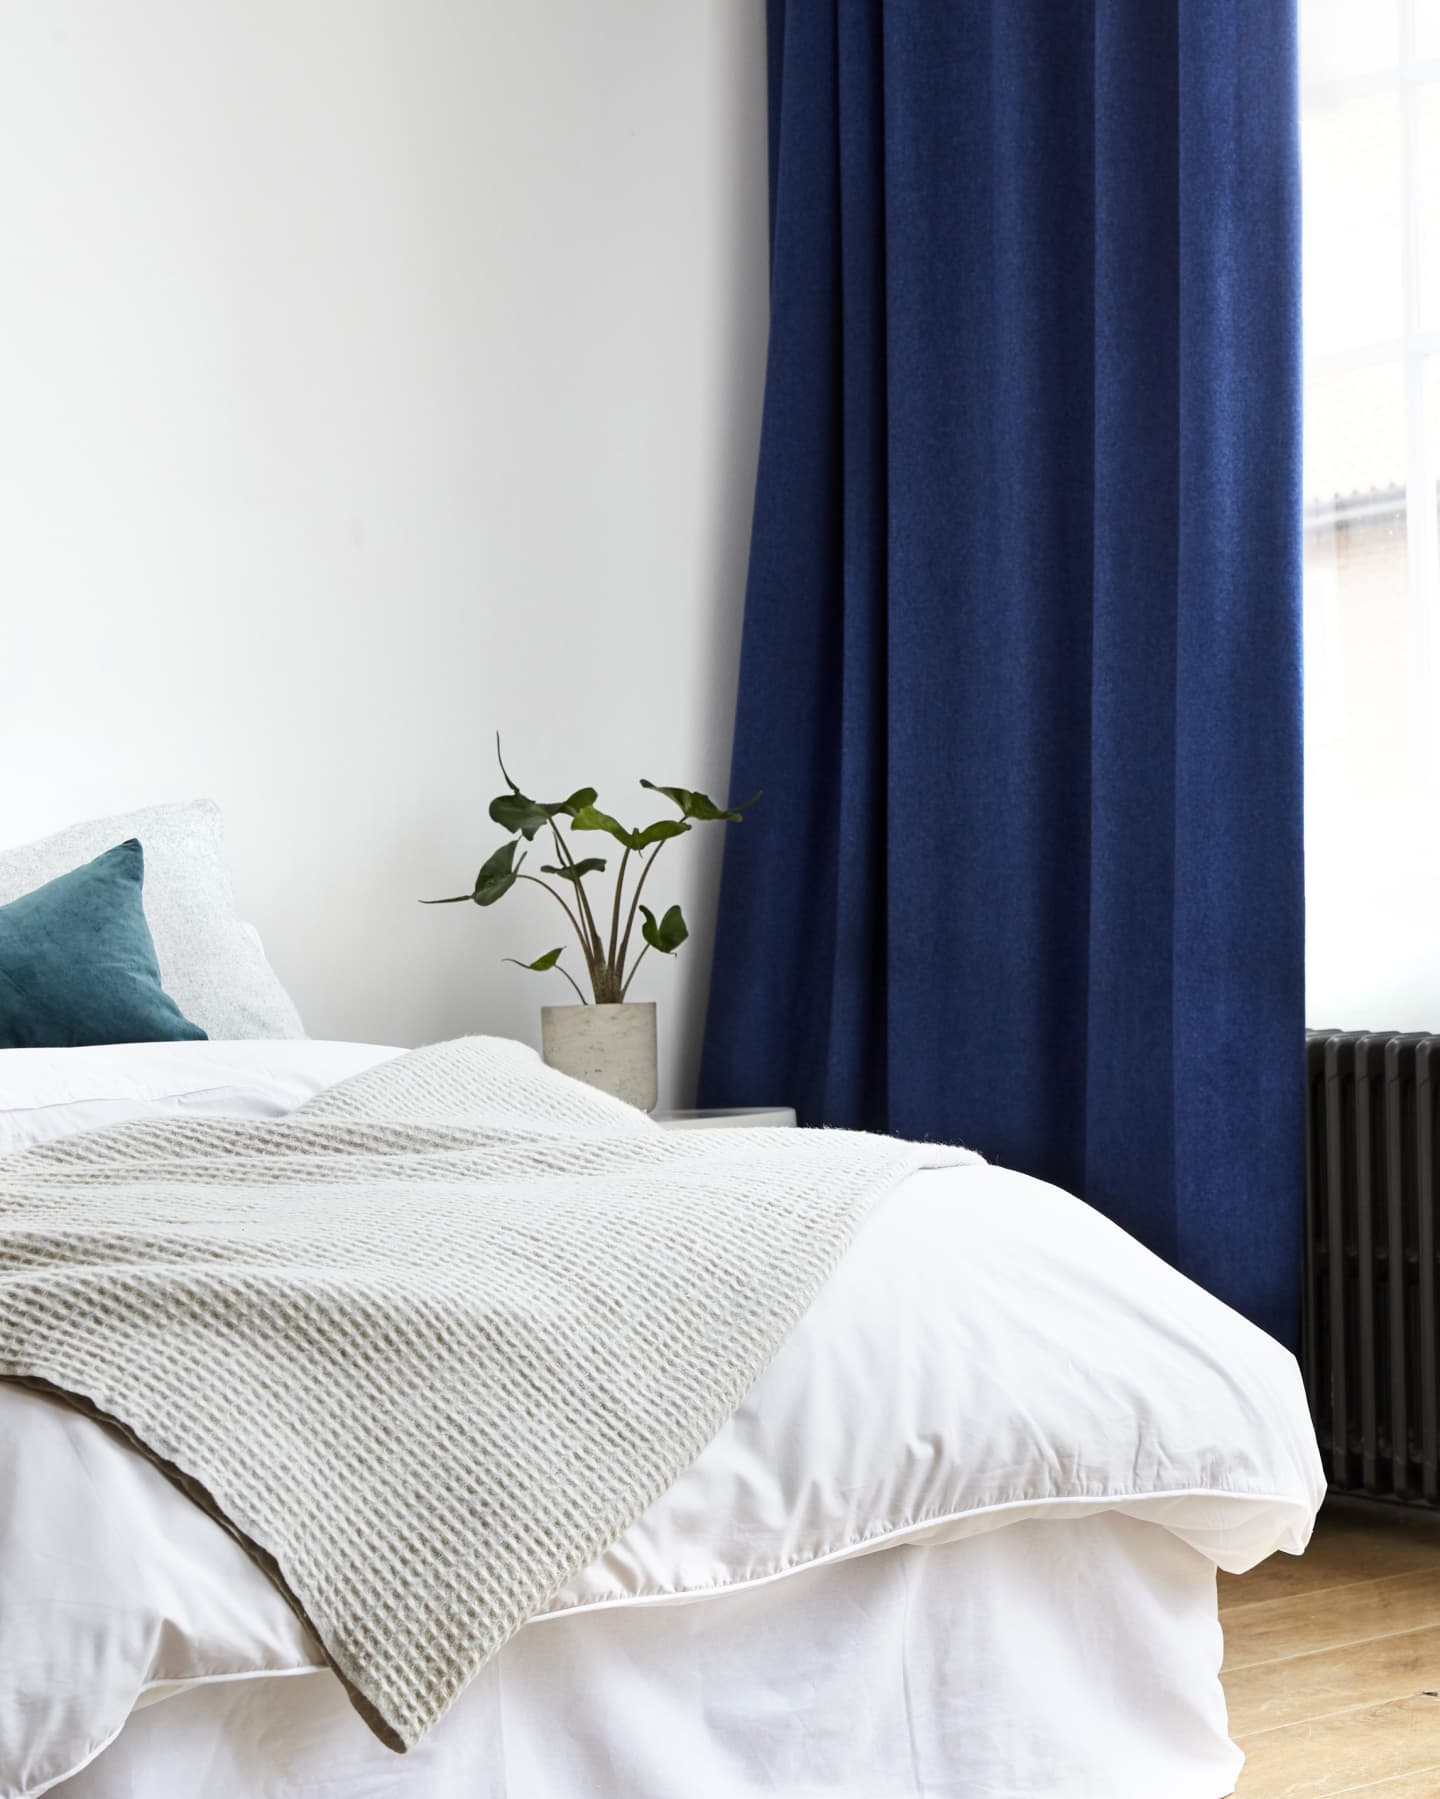 pristine bedroom with white walls and dark curtains